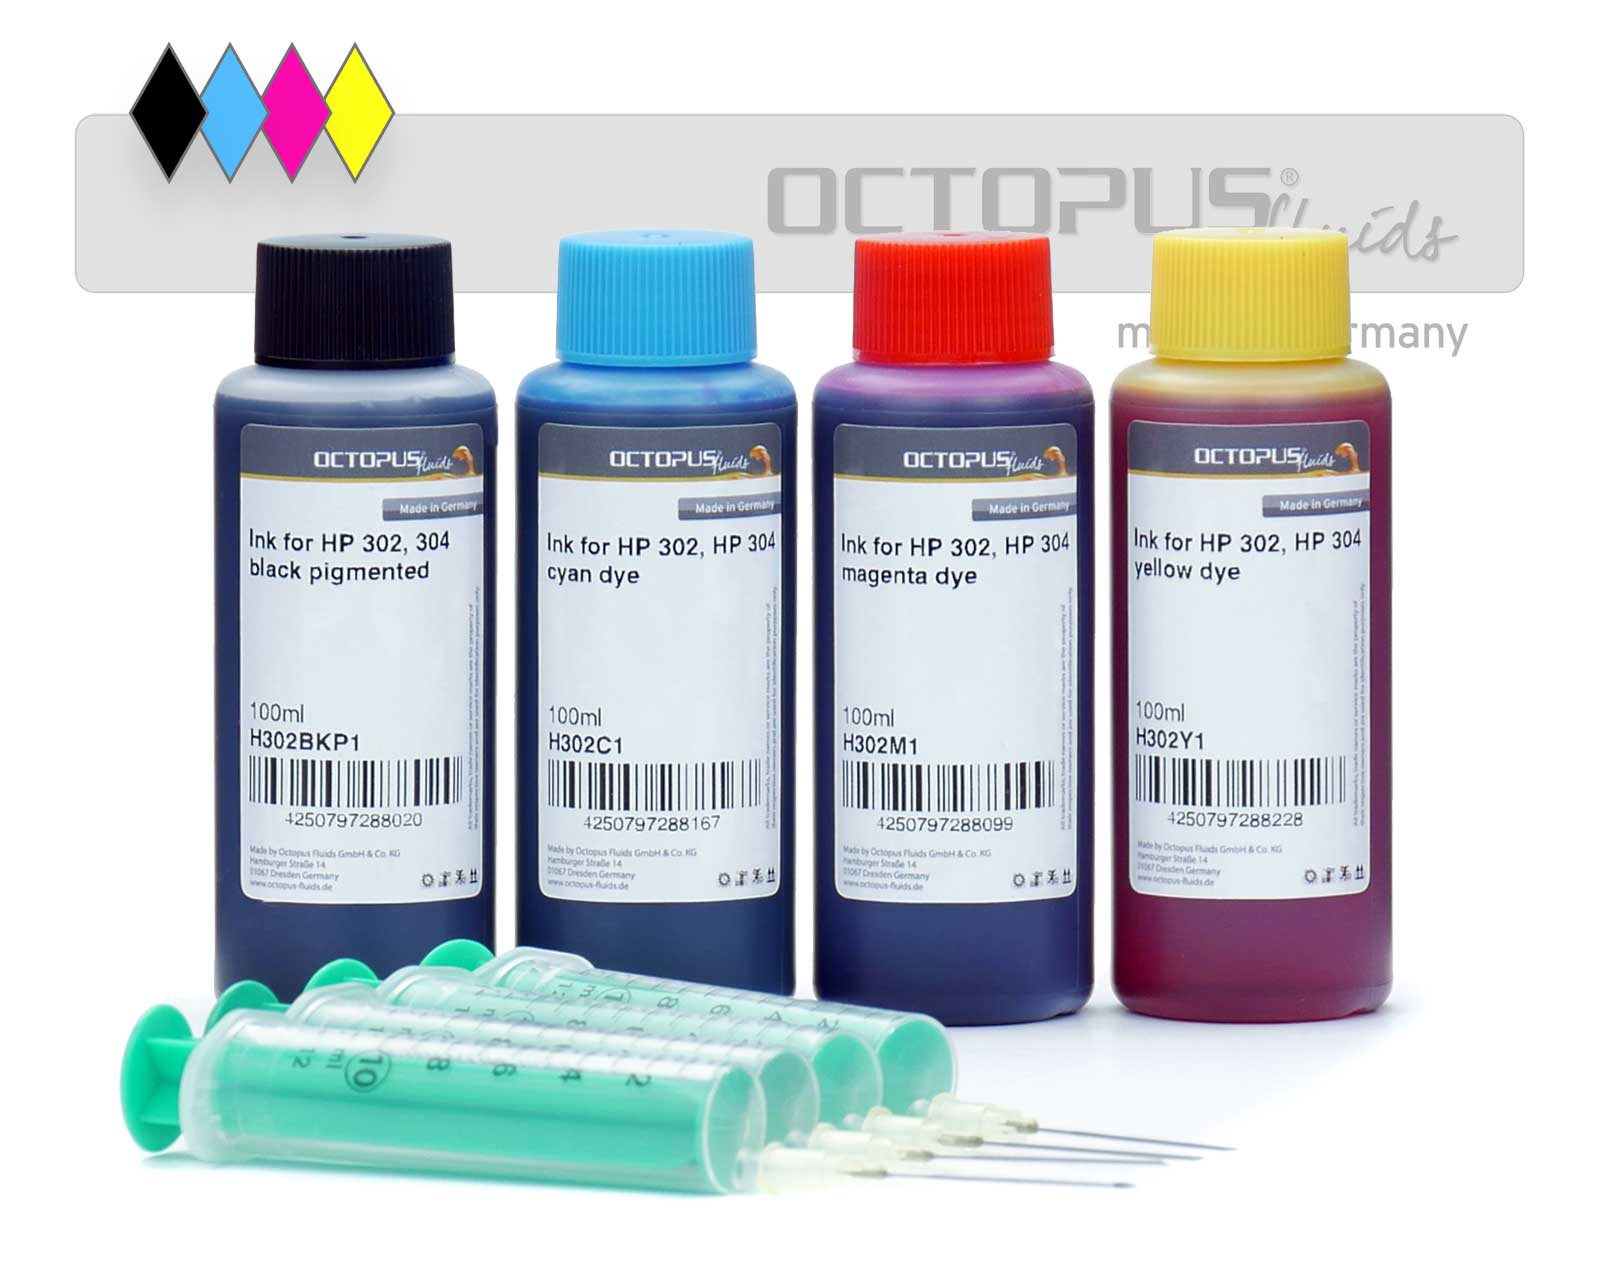 Refill ink kit for HP 302, HP 304 four colours